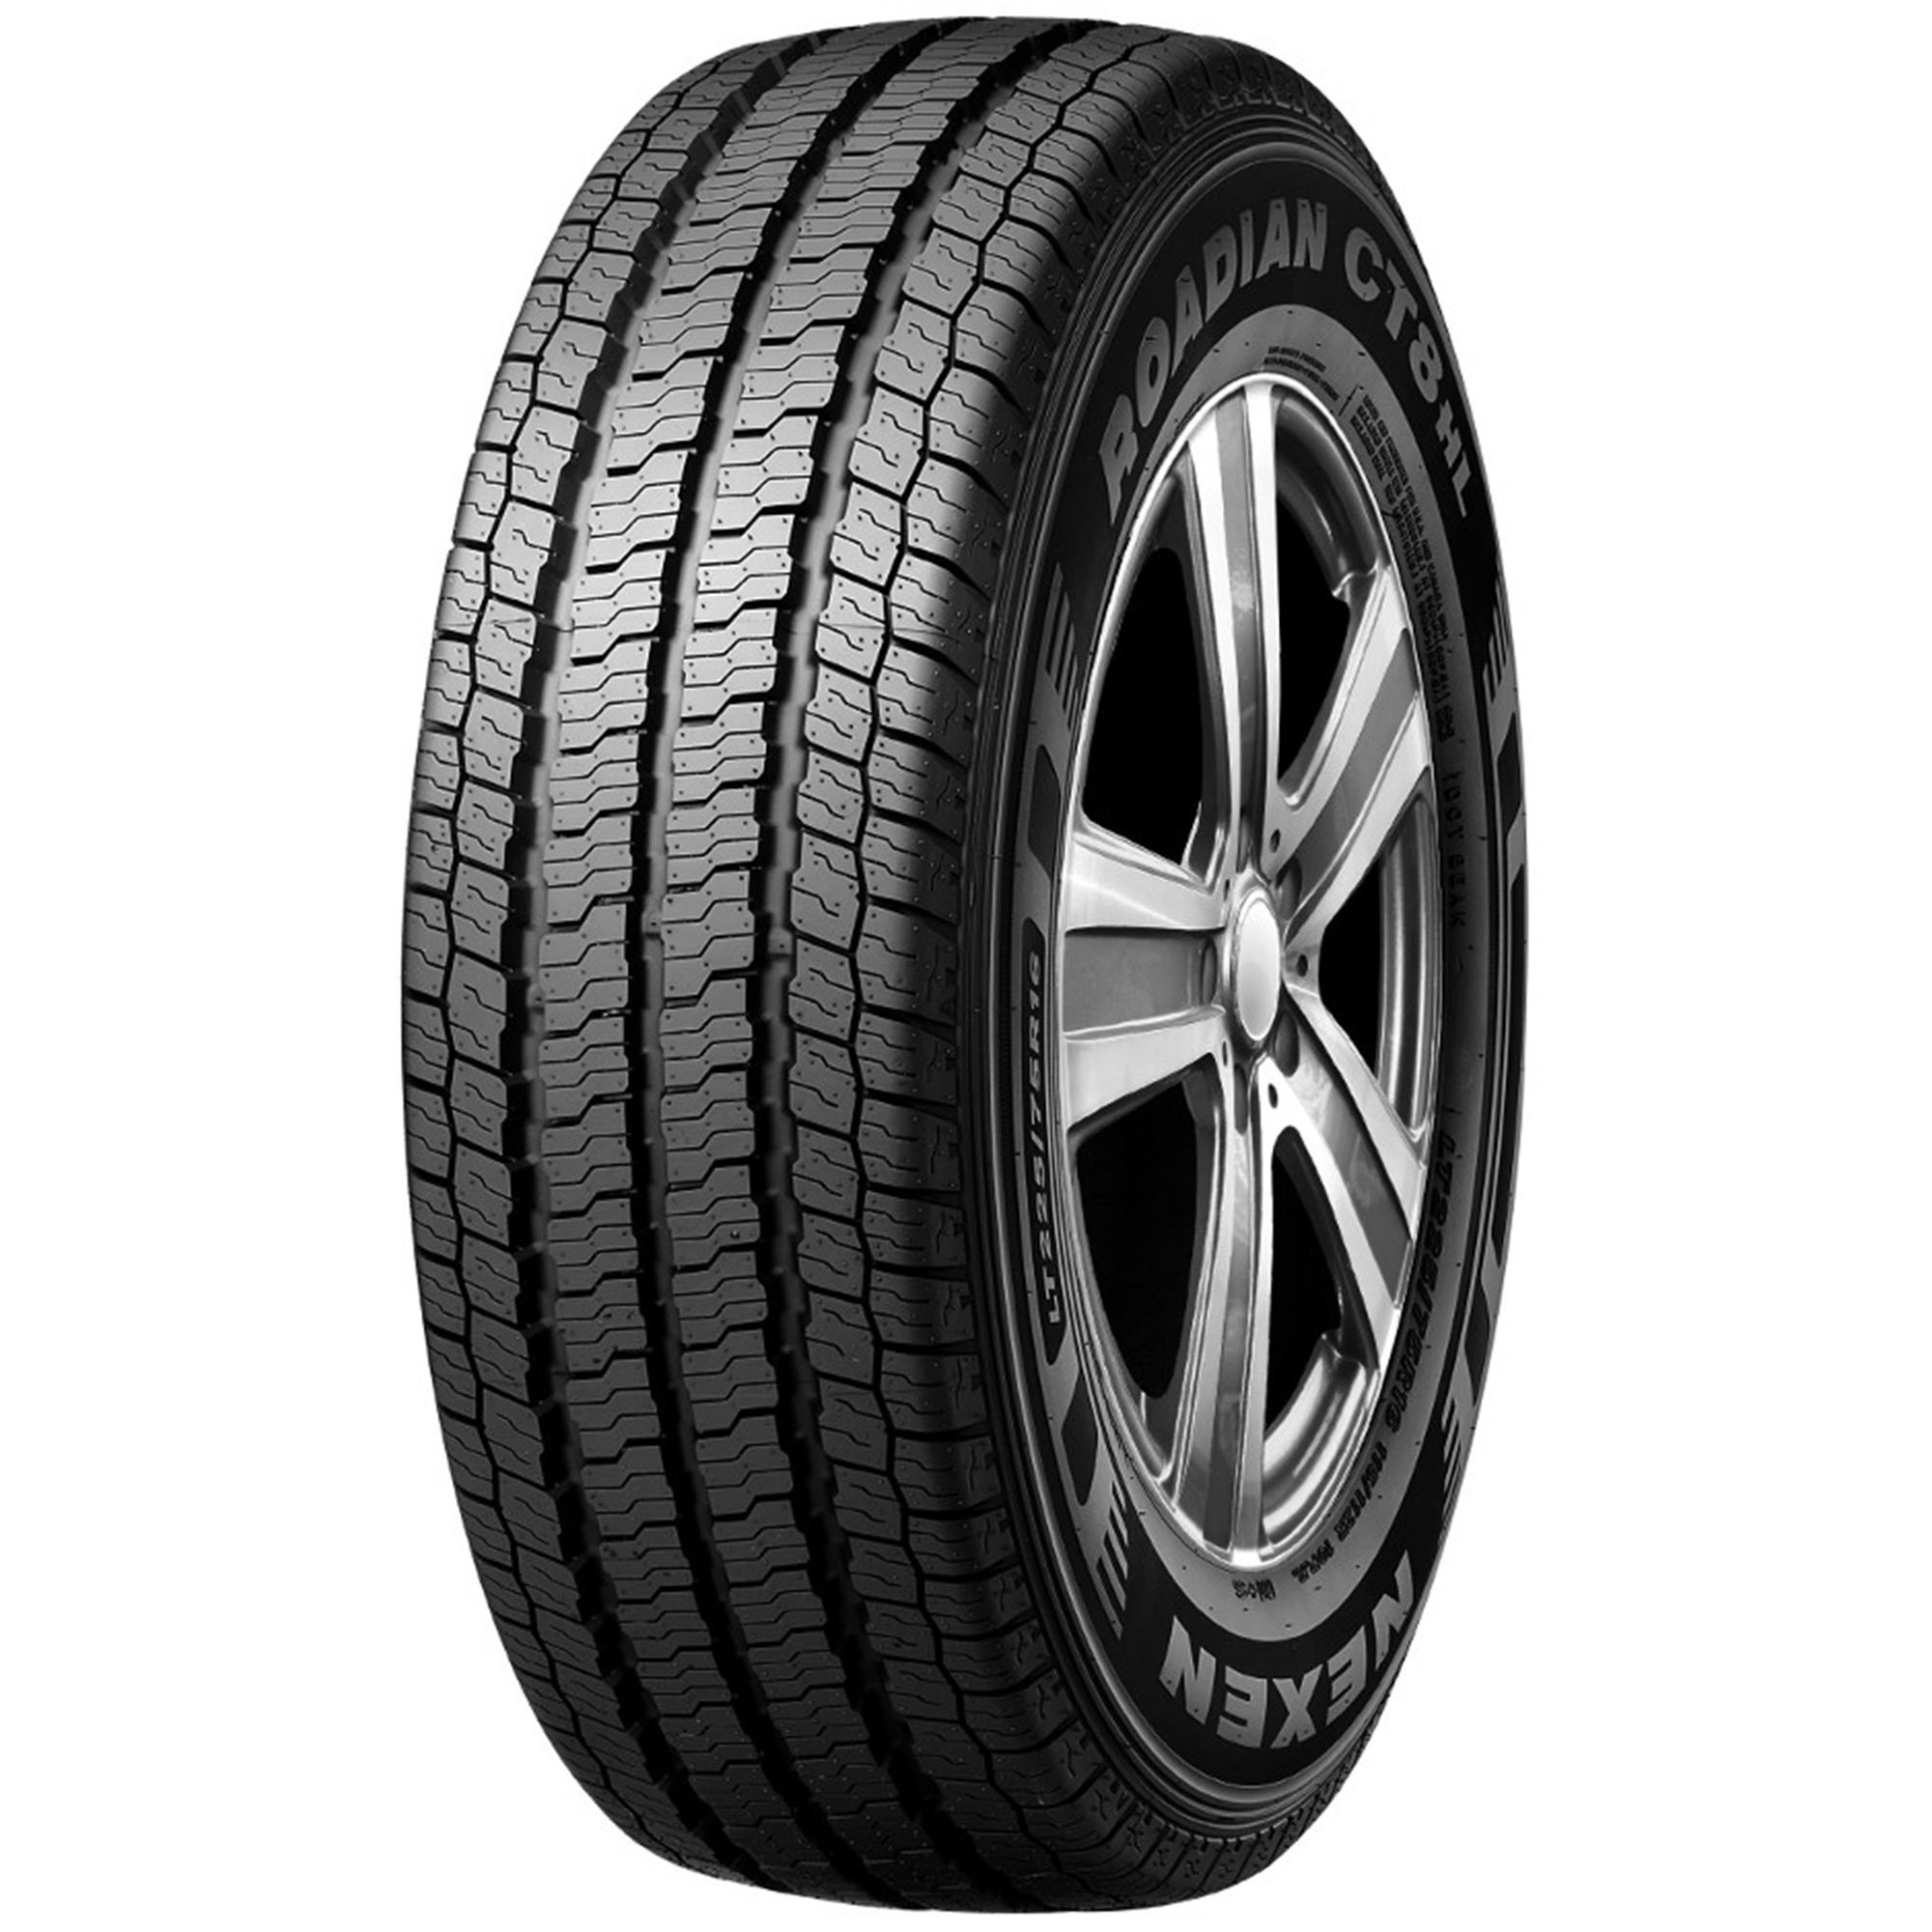 145R13 NEXEN ROADIAN CT8